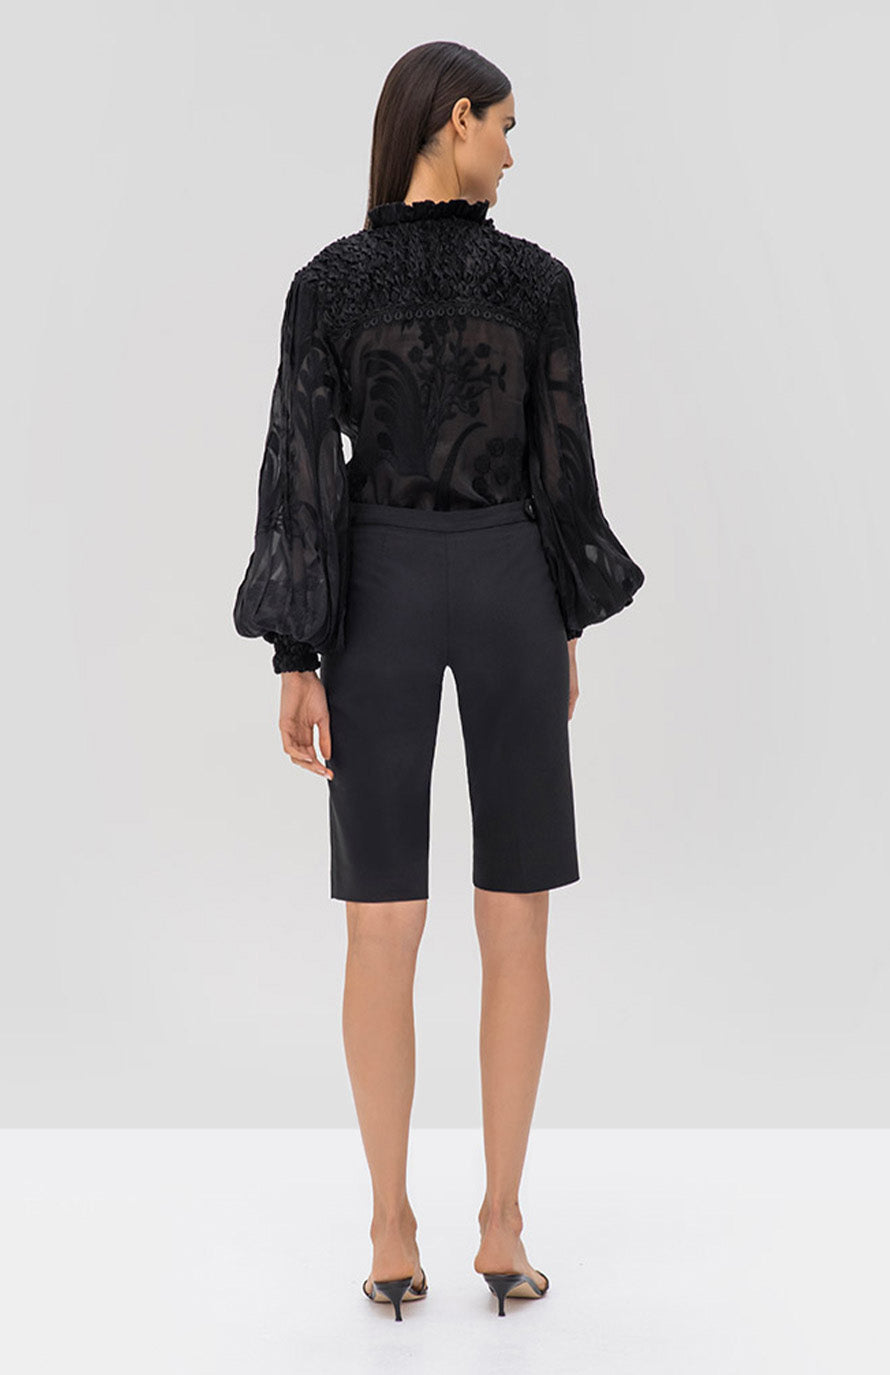 Alexis Bismarck Top in Black from the Pre Fall 2019 Ready To Wear Collection - Rear View